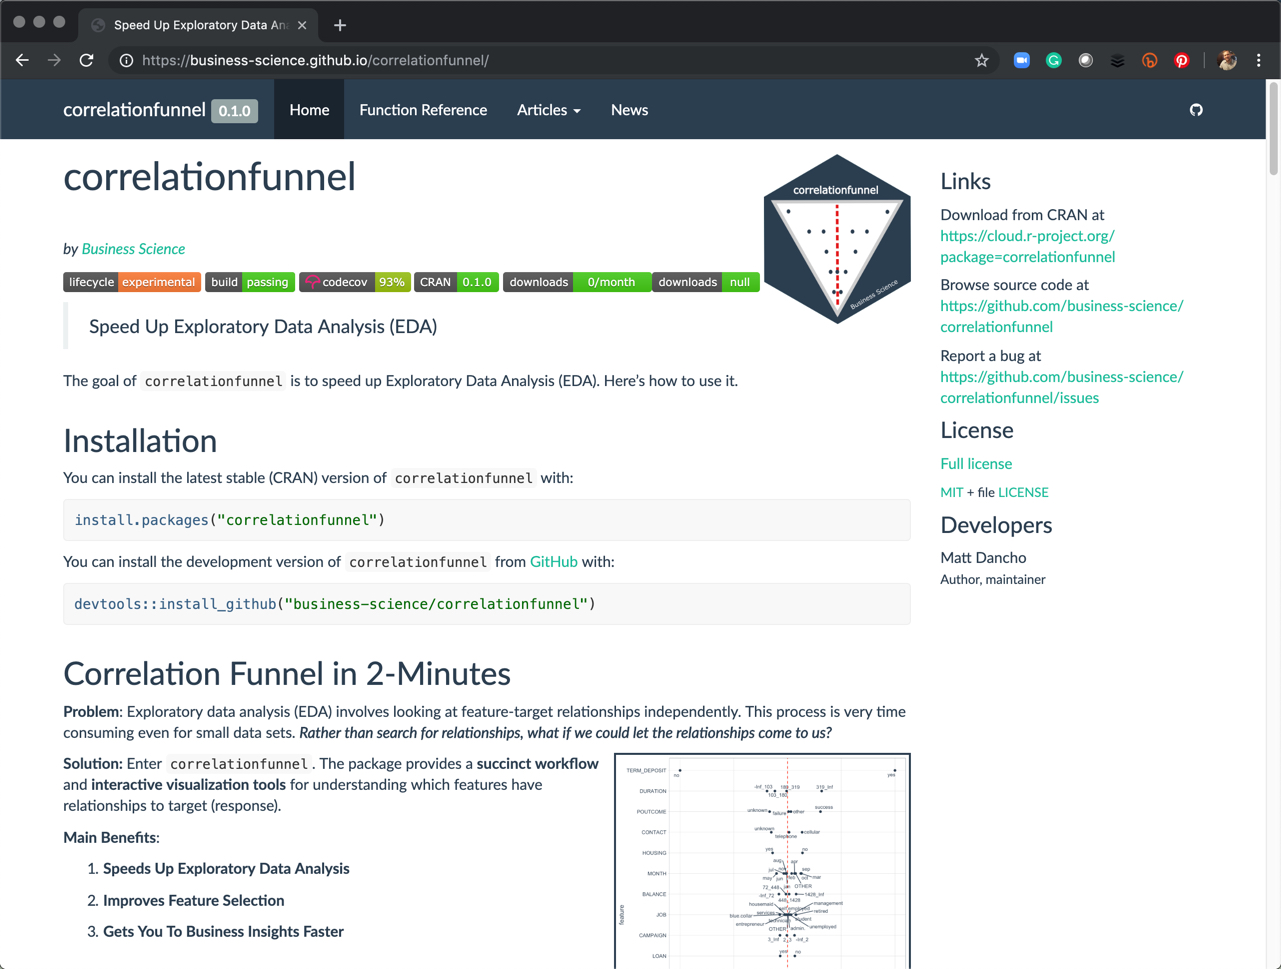 Introducing correlationfunnel v0.1.0 – Speed Up Exploratory Data Analysis by 100X